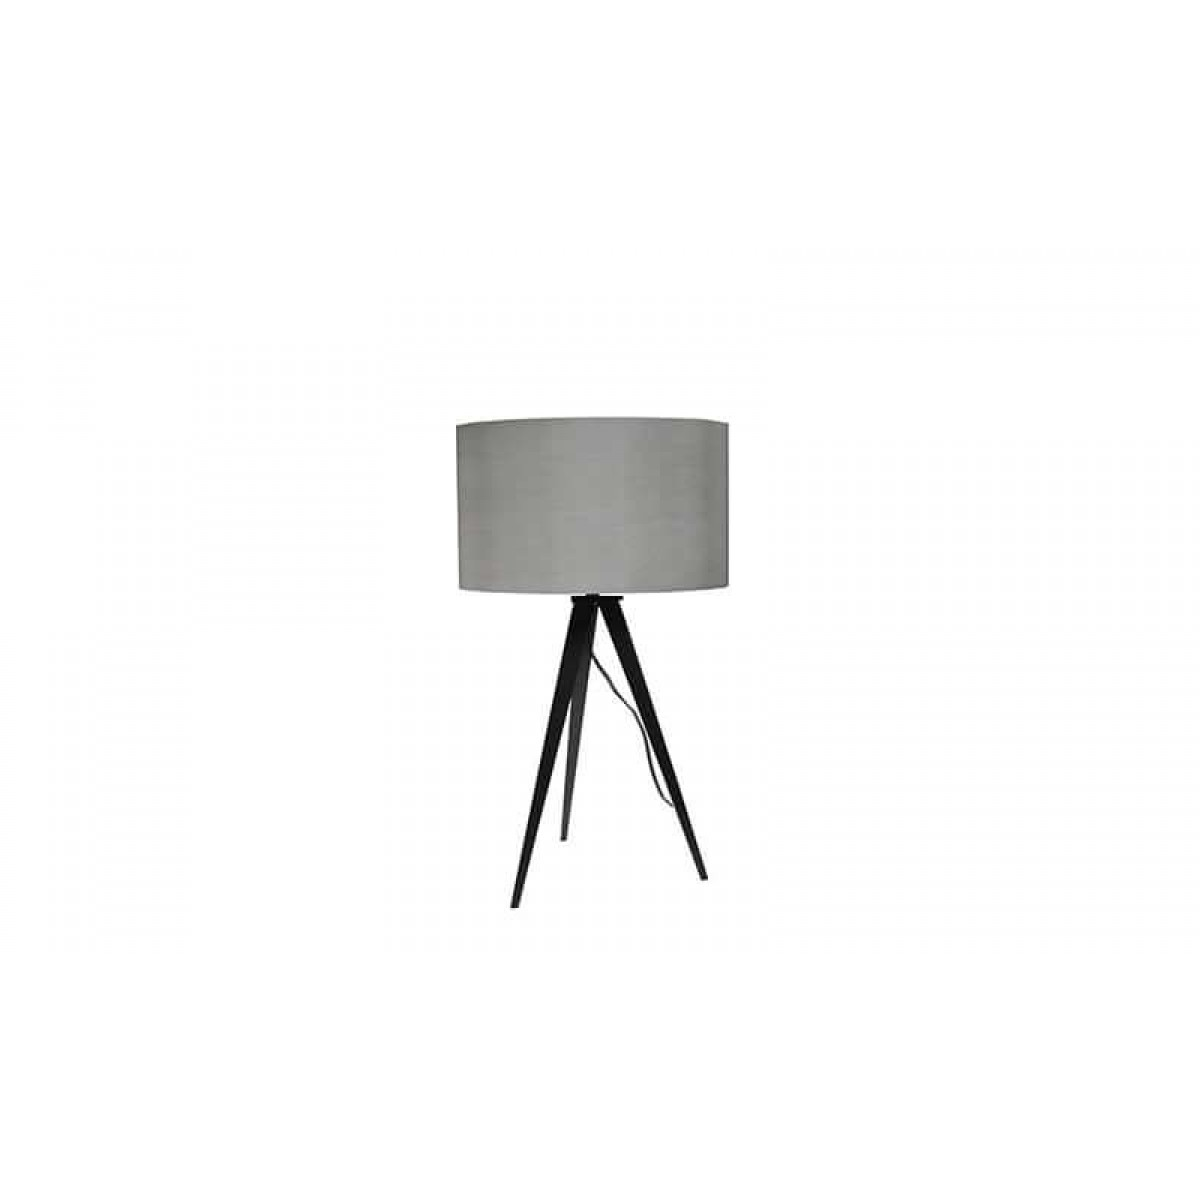 lampe de table tripod style scandinave bicolore gris noir mooviin. Black Bedroom Furniture Sets. Home Design Ideas